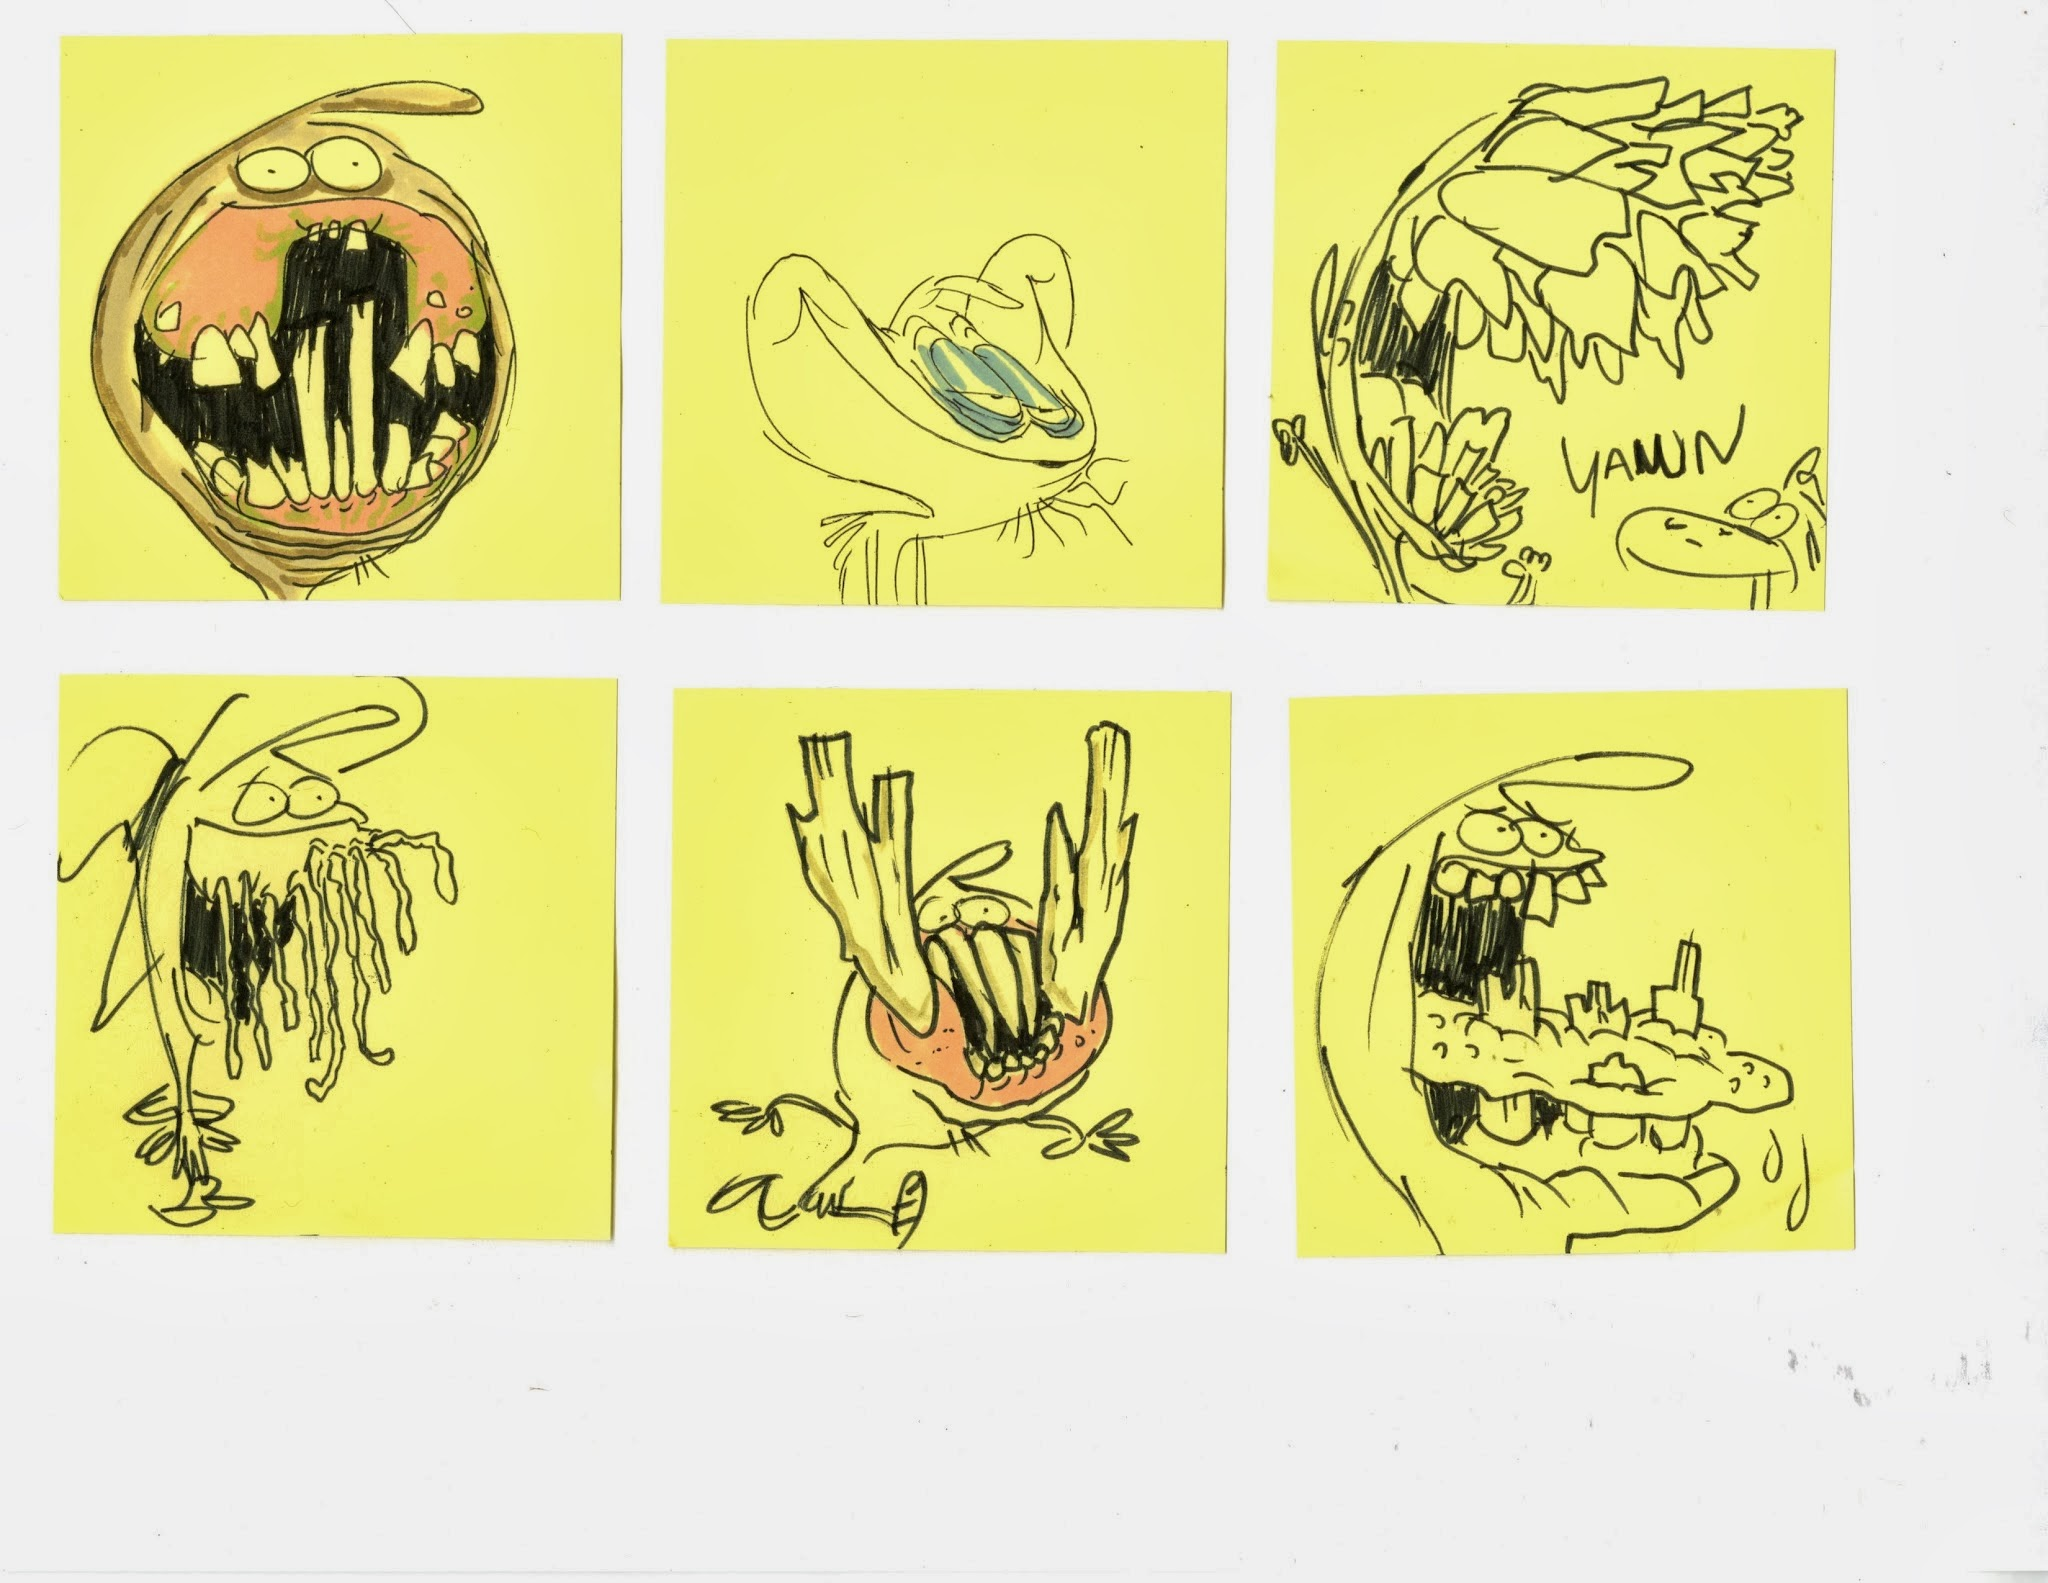 2048x1583 Post It Drawing Scans018 Derpy News Wander Over Yonder